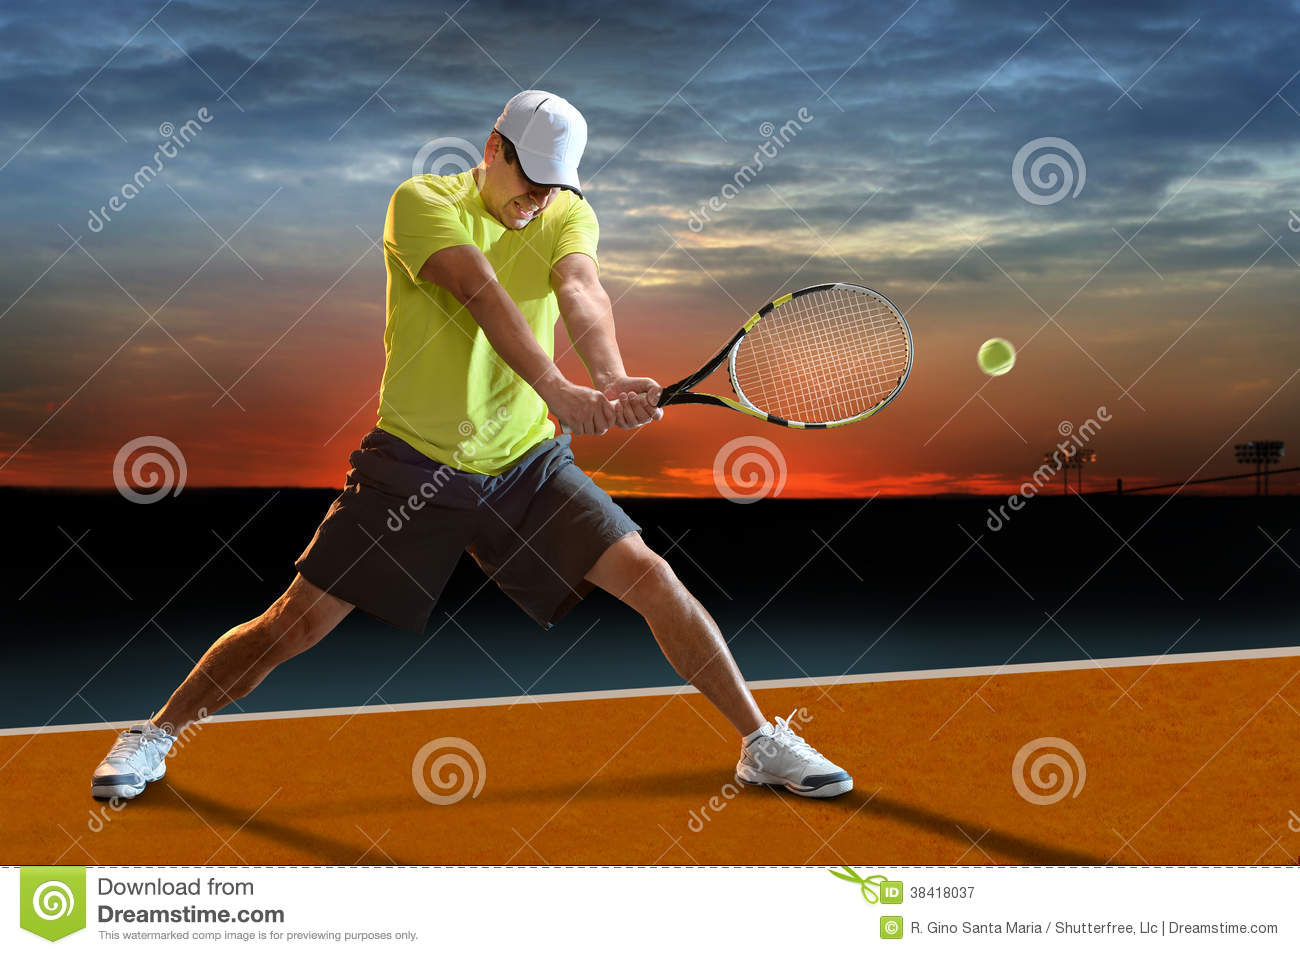 Tennis Player Outdoors Stock Image Image Of Court, Ball -7457